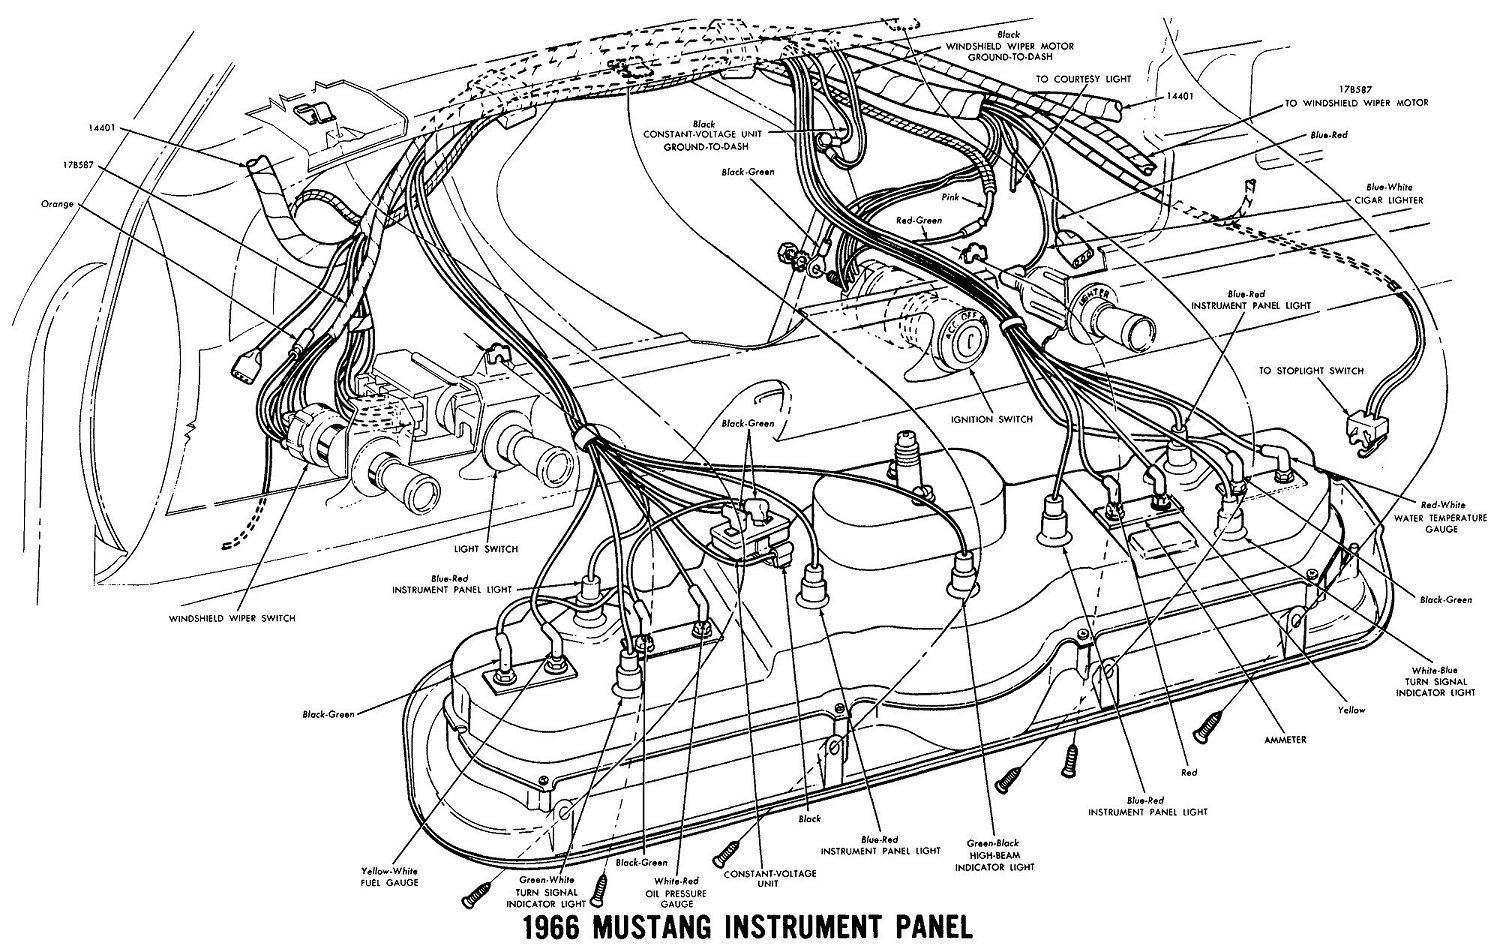 1966 FORD VOLTAGE REGULATOR WIRING DIAGRAM - Auto ...